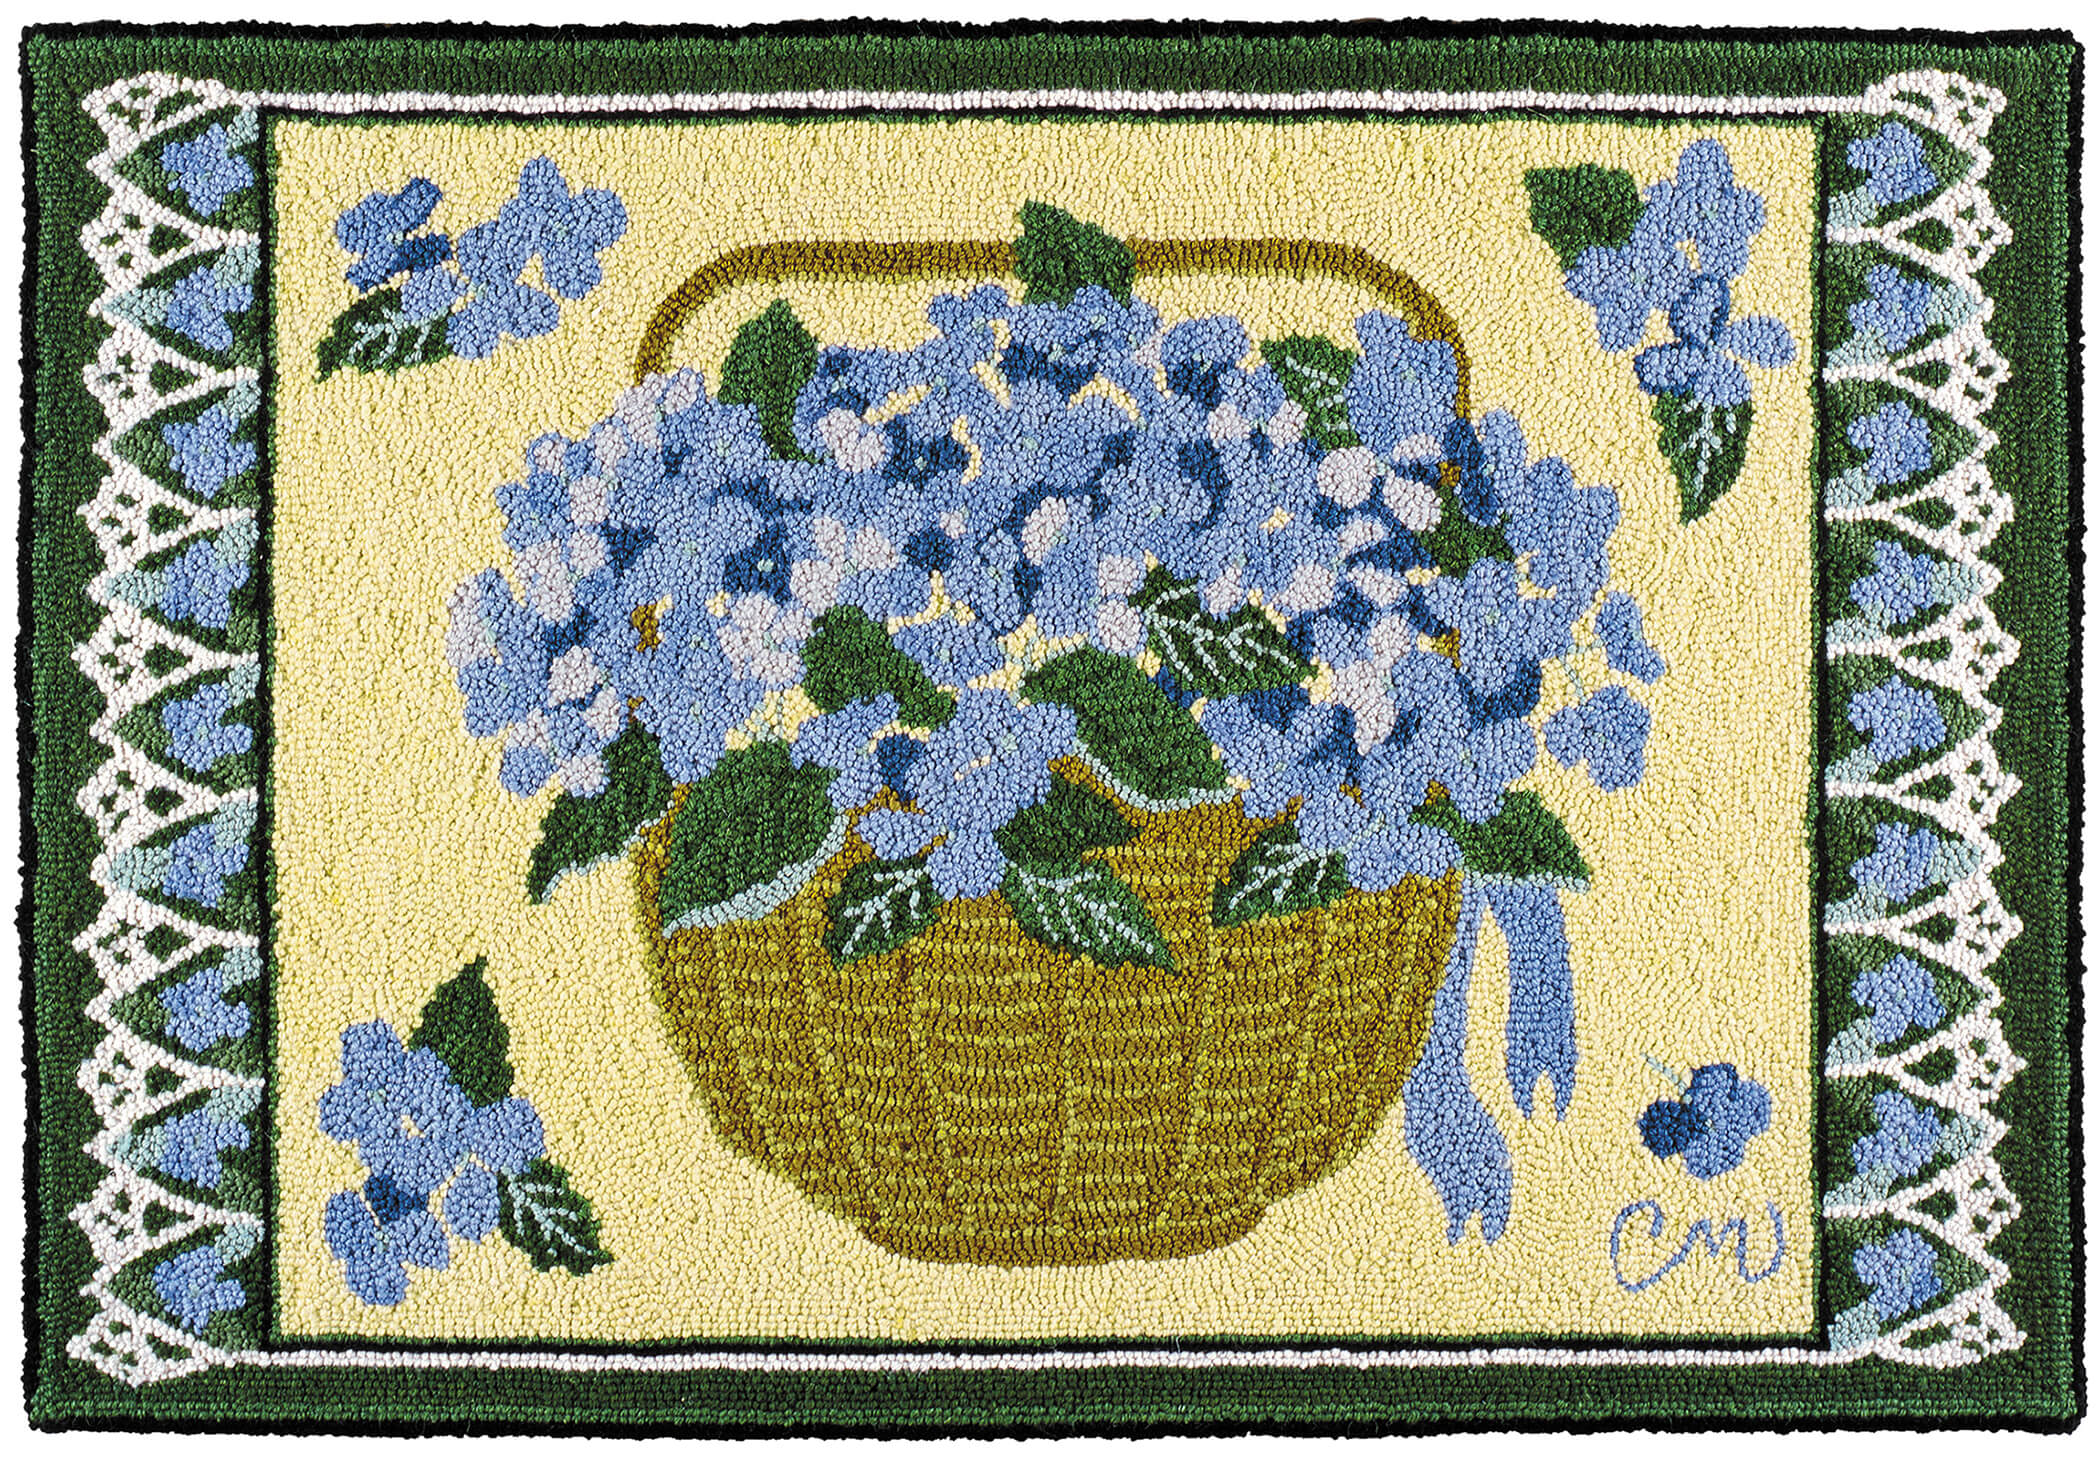 hooked rugs claire murray hydrangea basker 2 x 3 hand hooked rug DGZWUFE